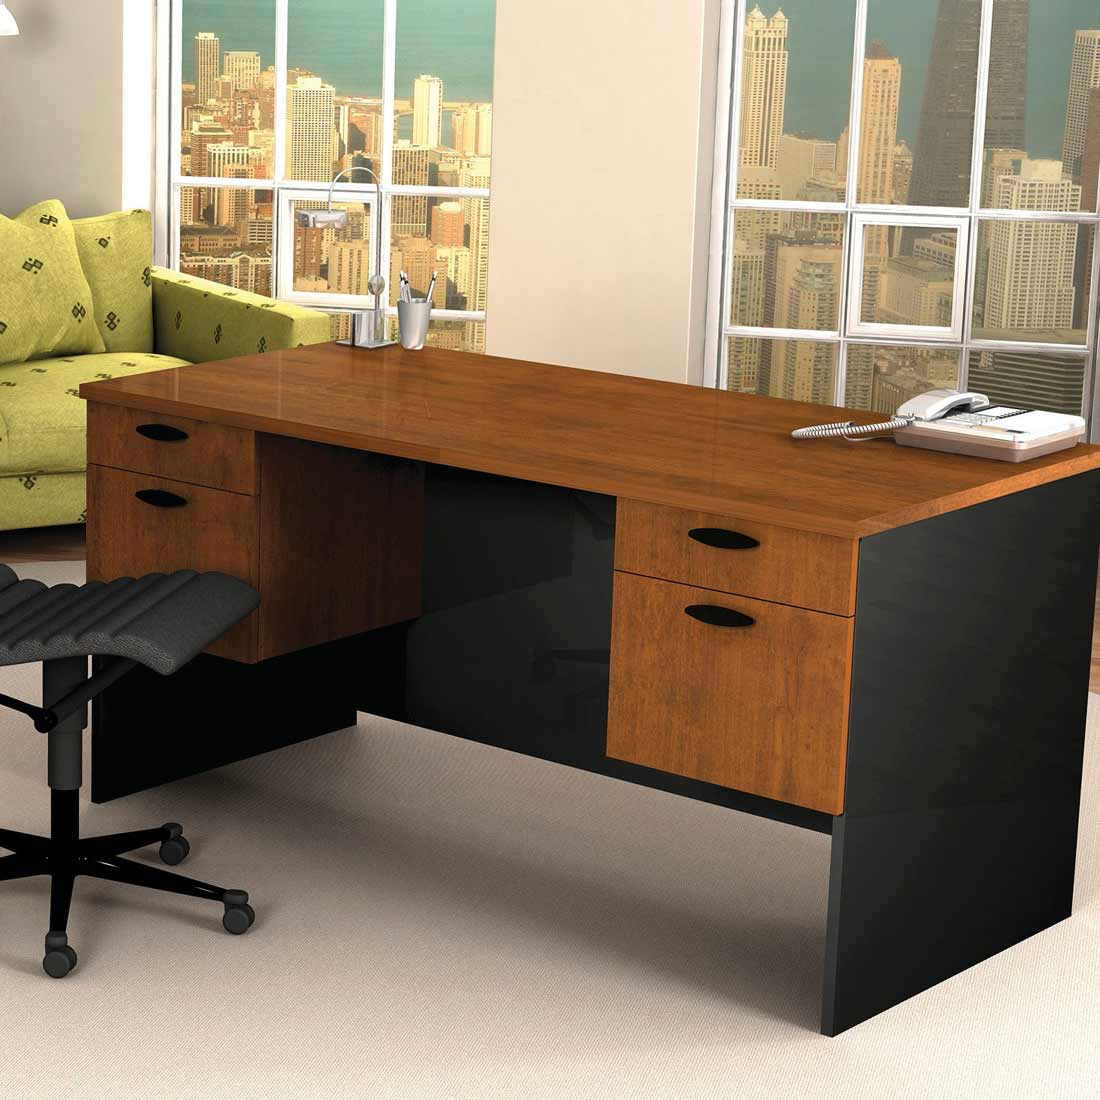 Bestar Hampton cheap executive desks in dark brown tuscany